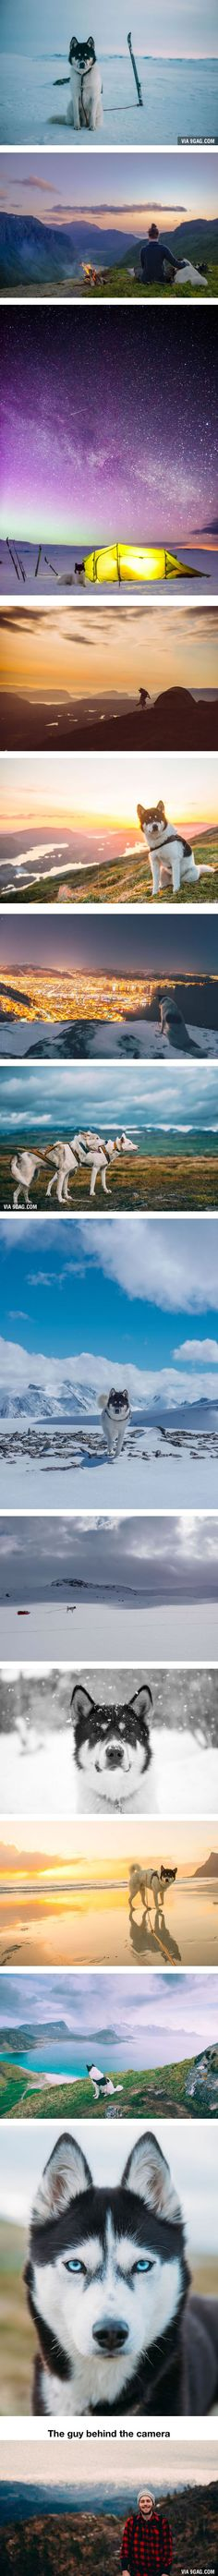 Husky Goes On Incredible Trip To Norway With Owner (By Henrik Vikse)